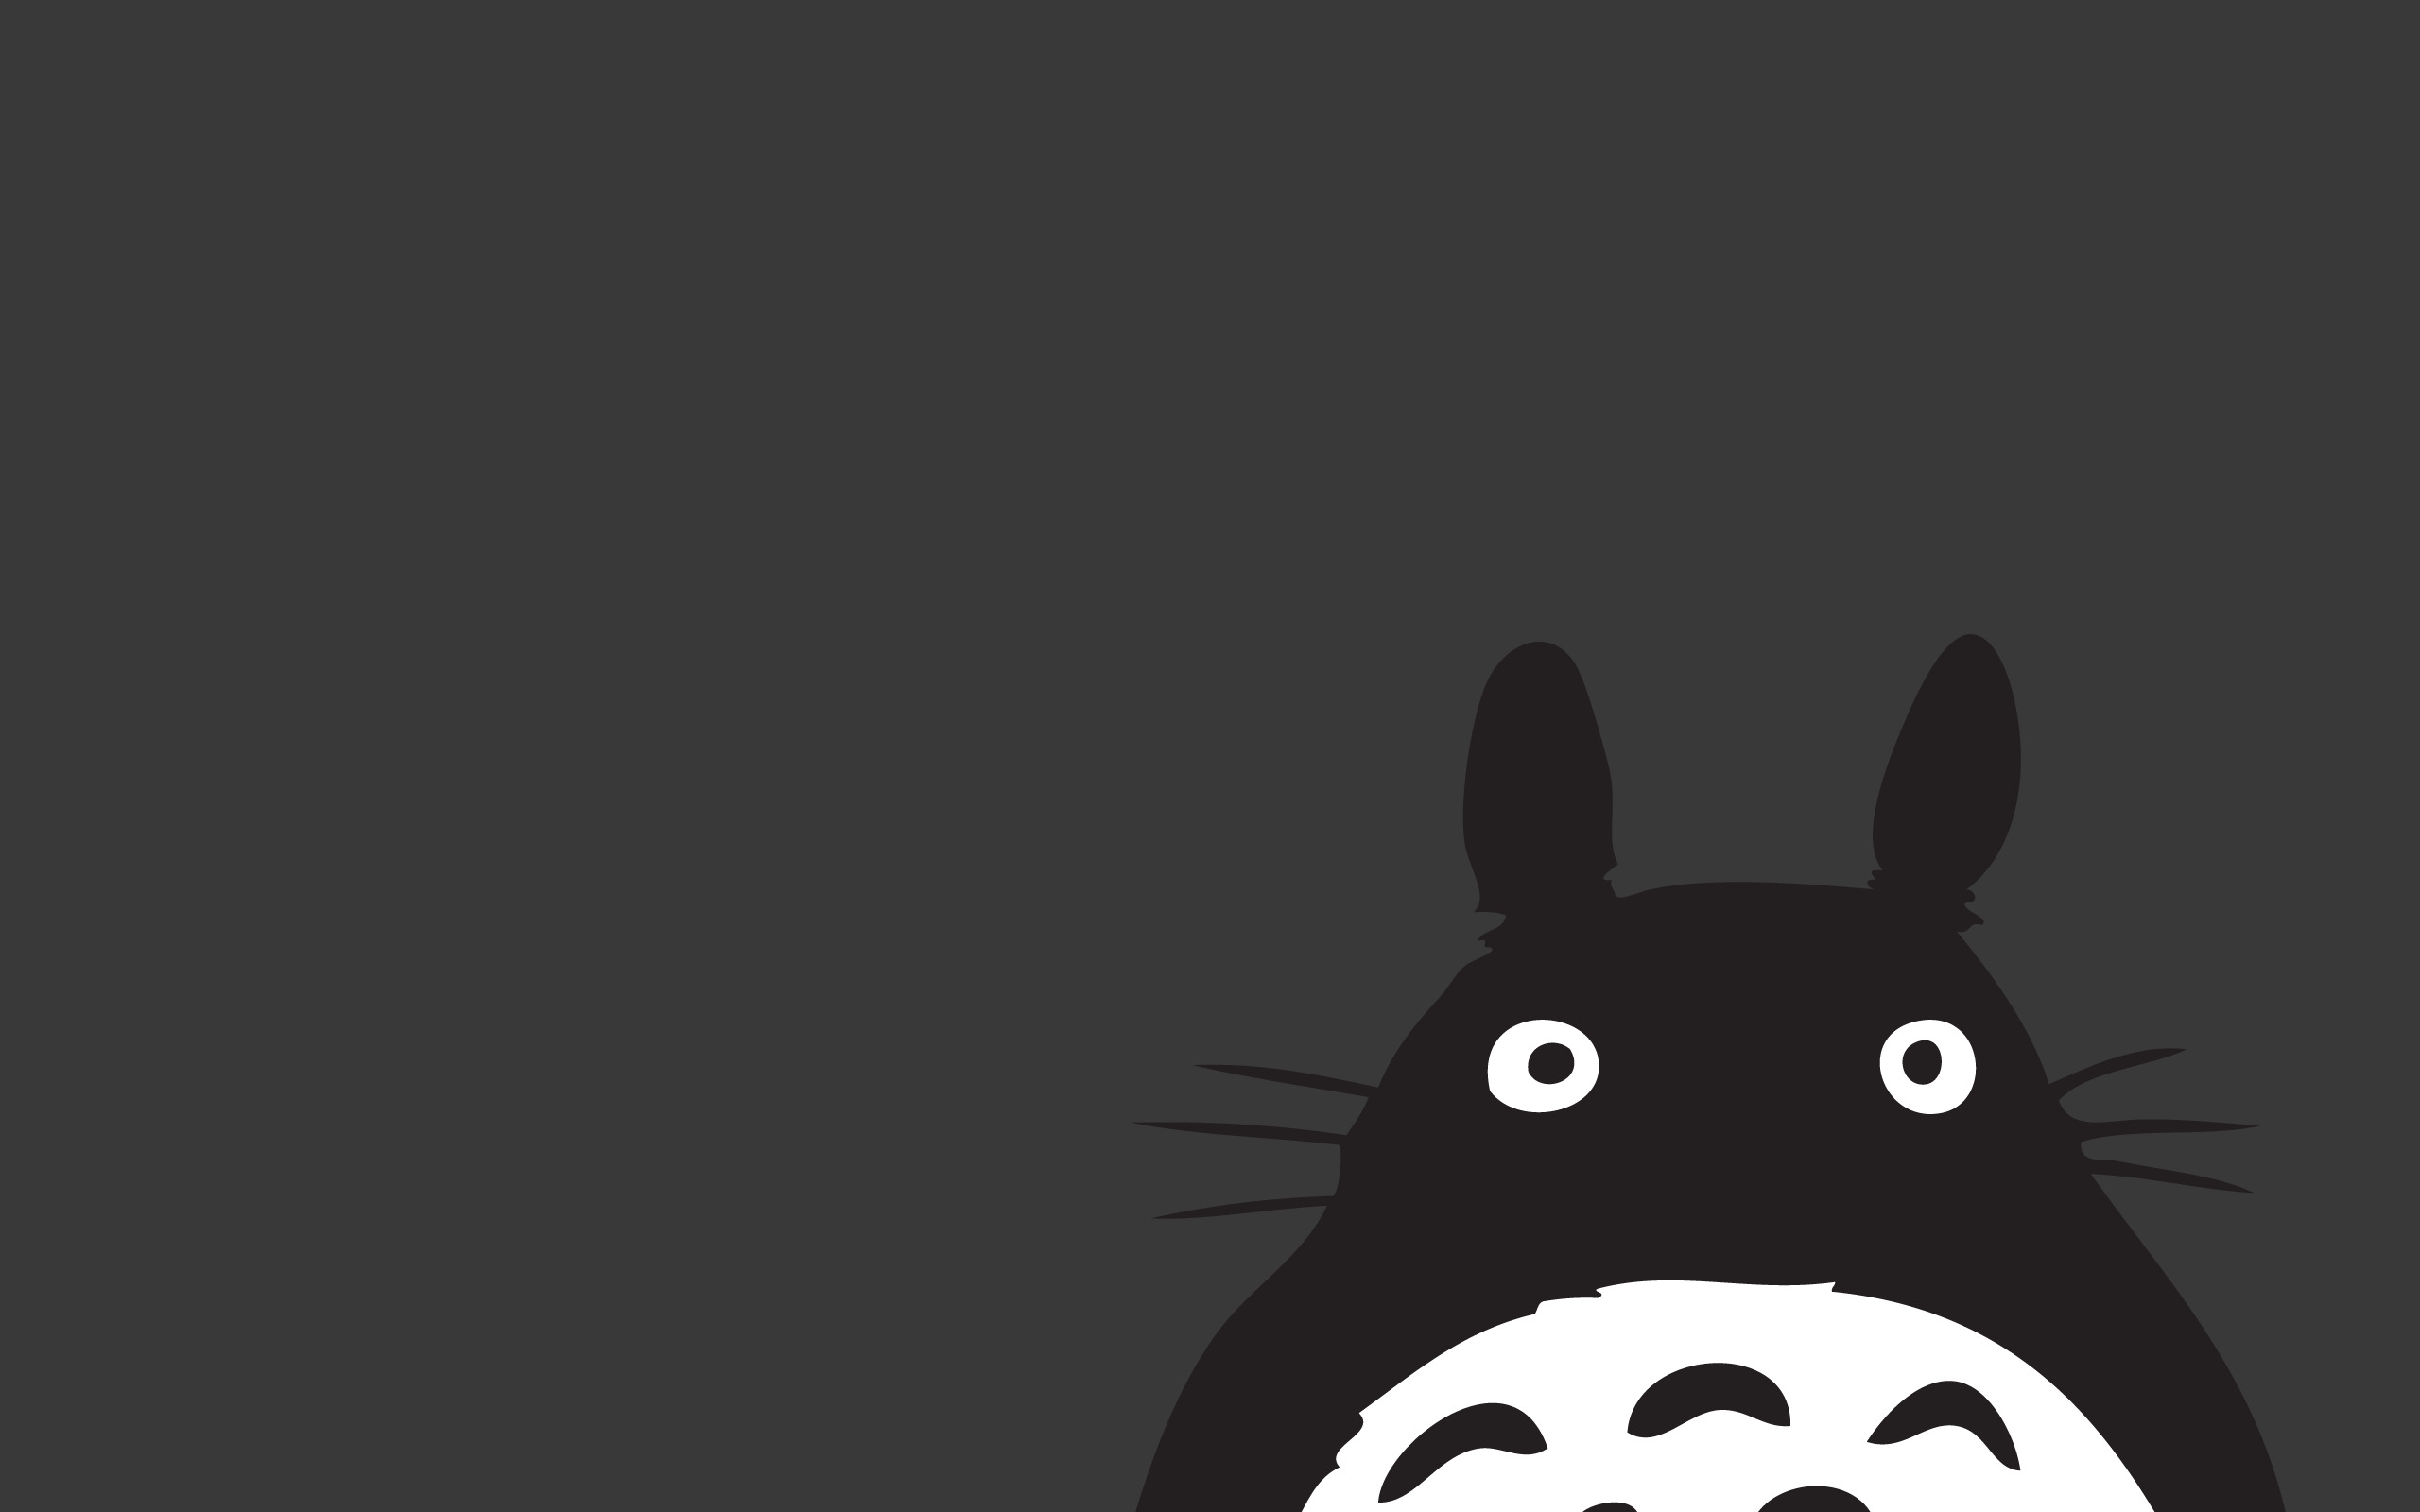 totoro Manga Anime HD Wallpaper